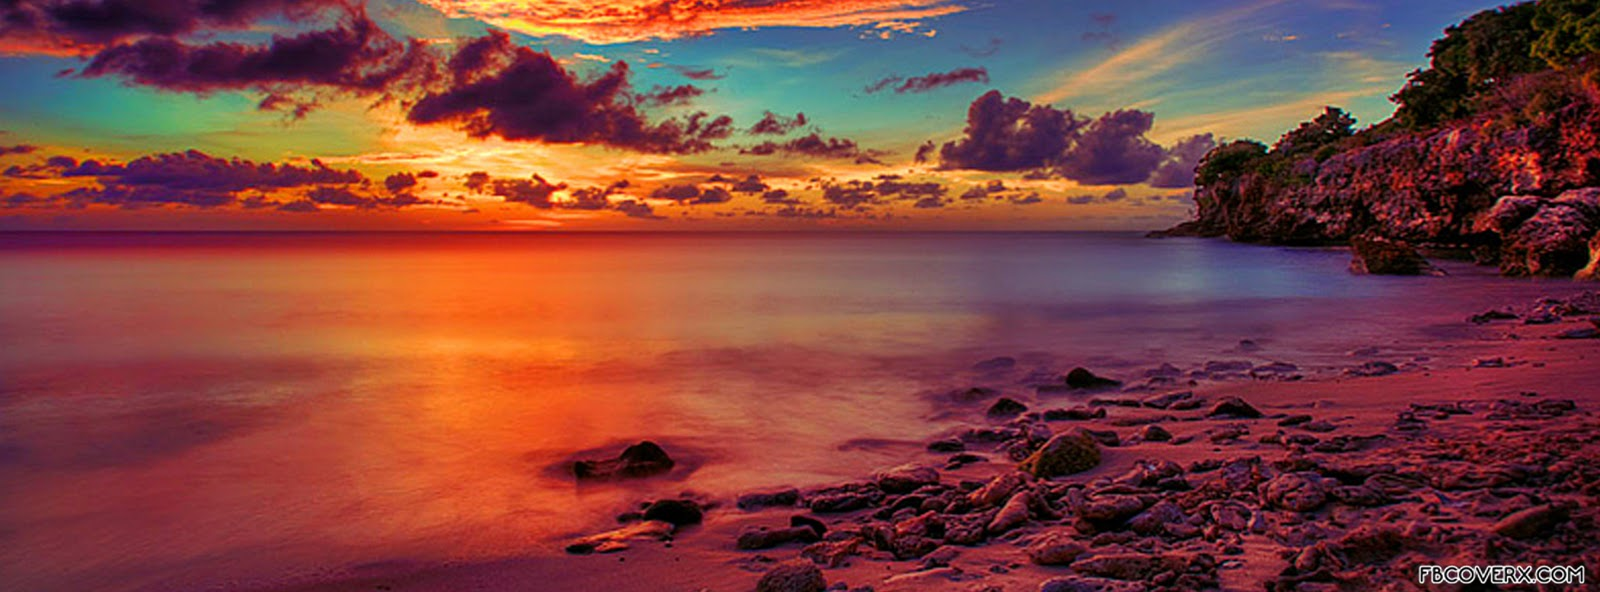 Sunset Facebook Cover